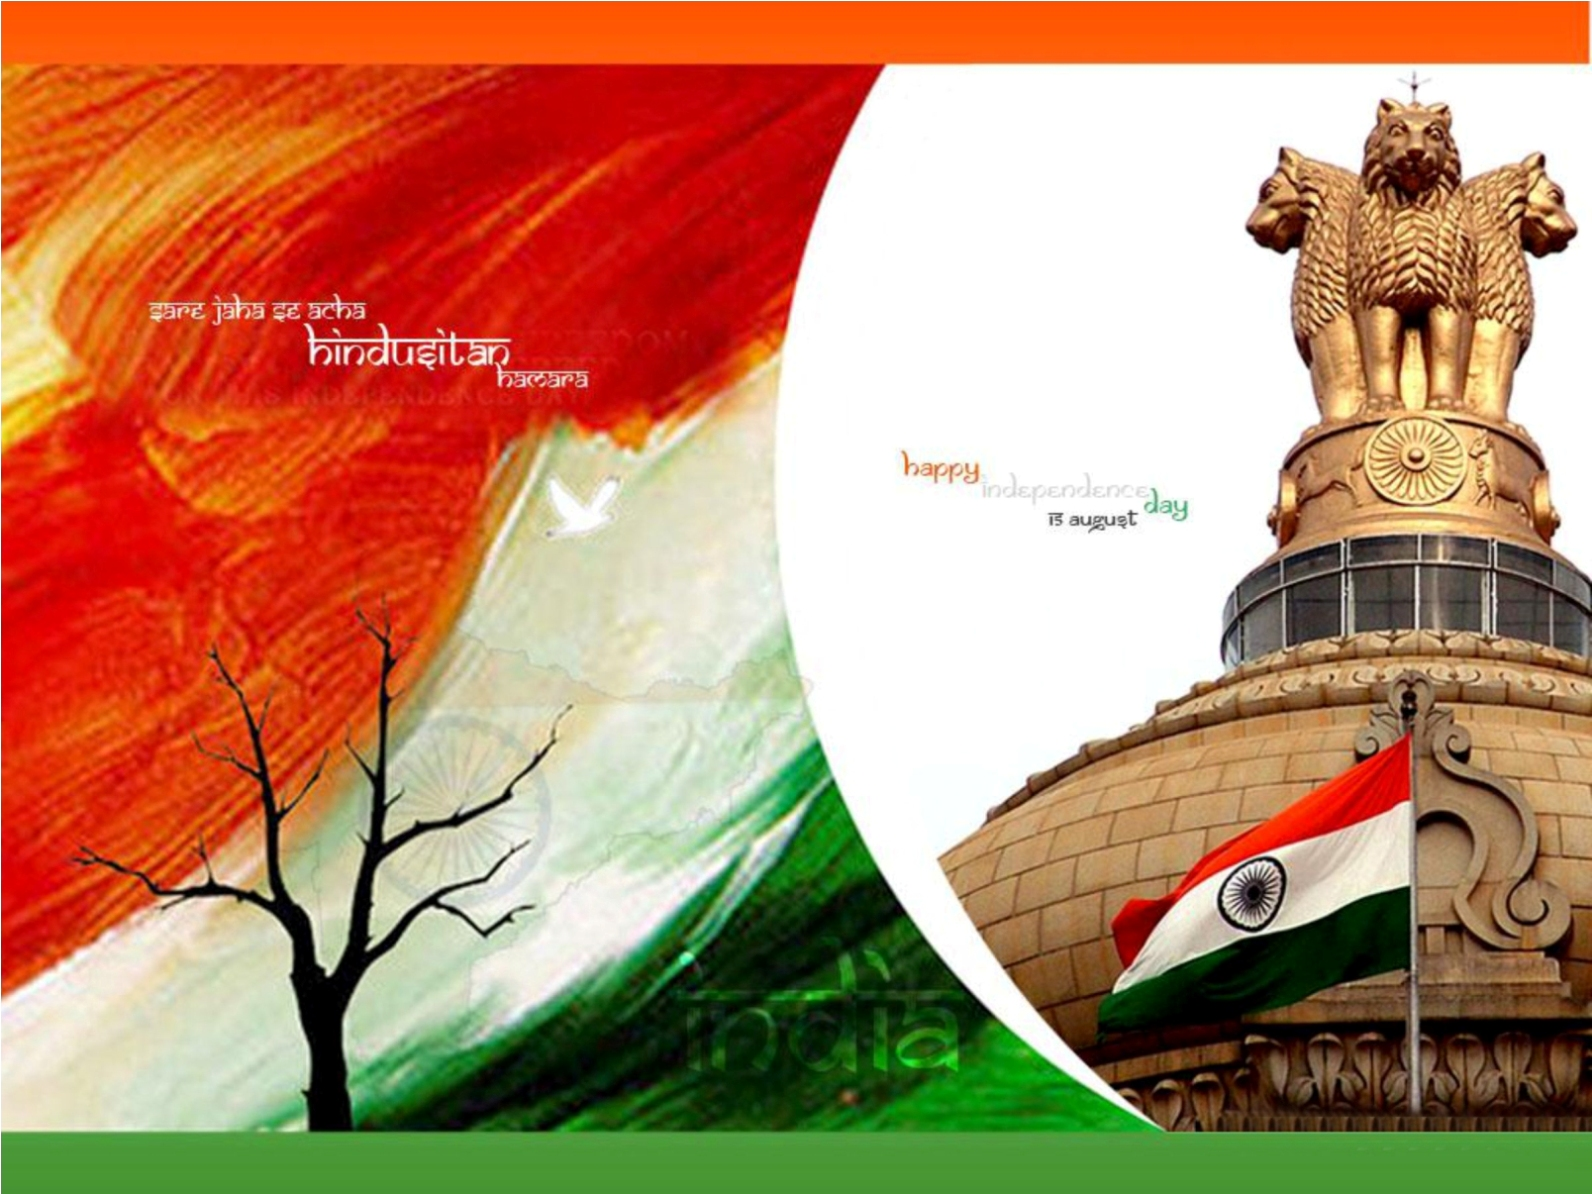 15 August Independence Day Hd Wallpaper: Happy Independence Day